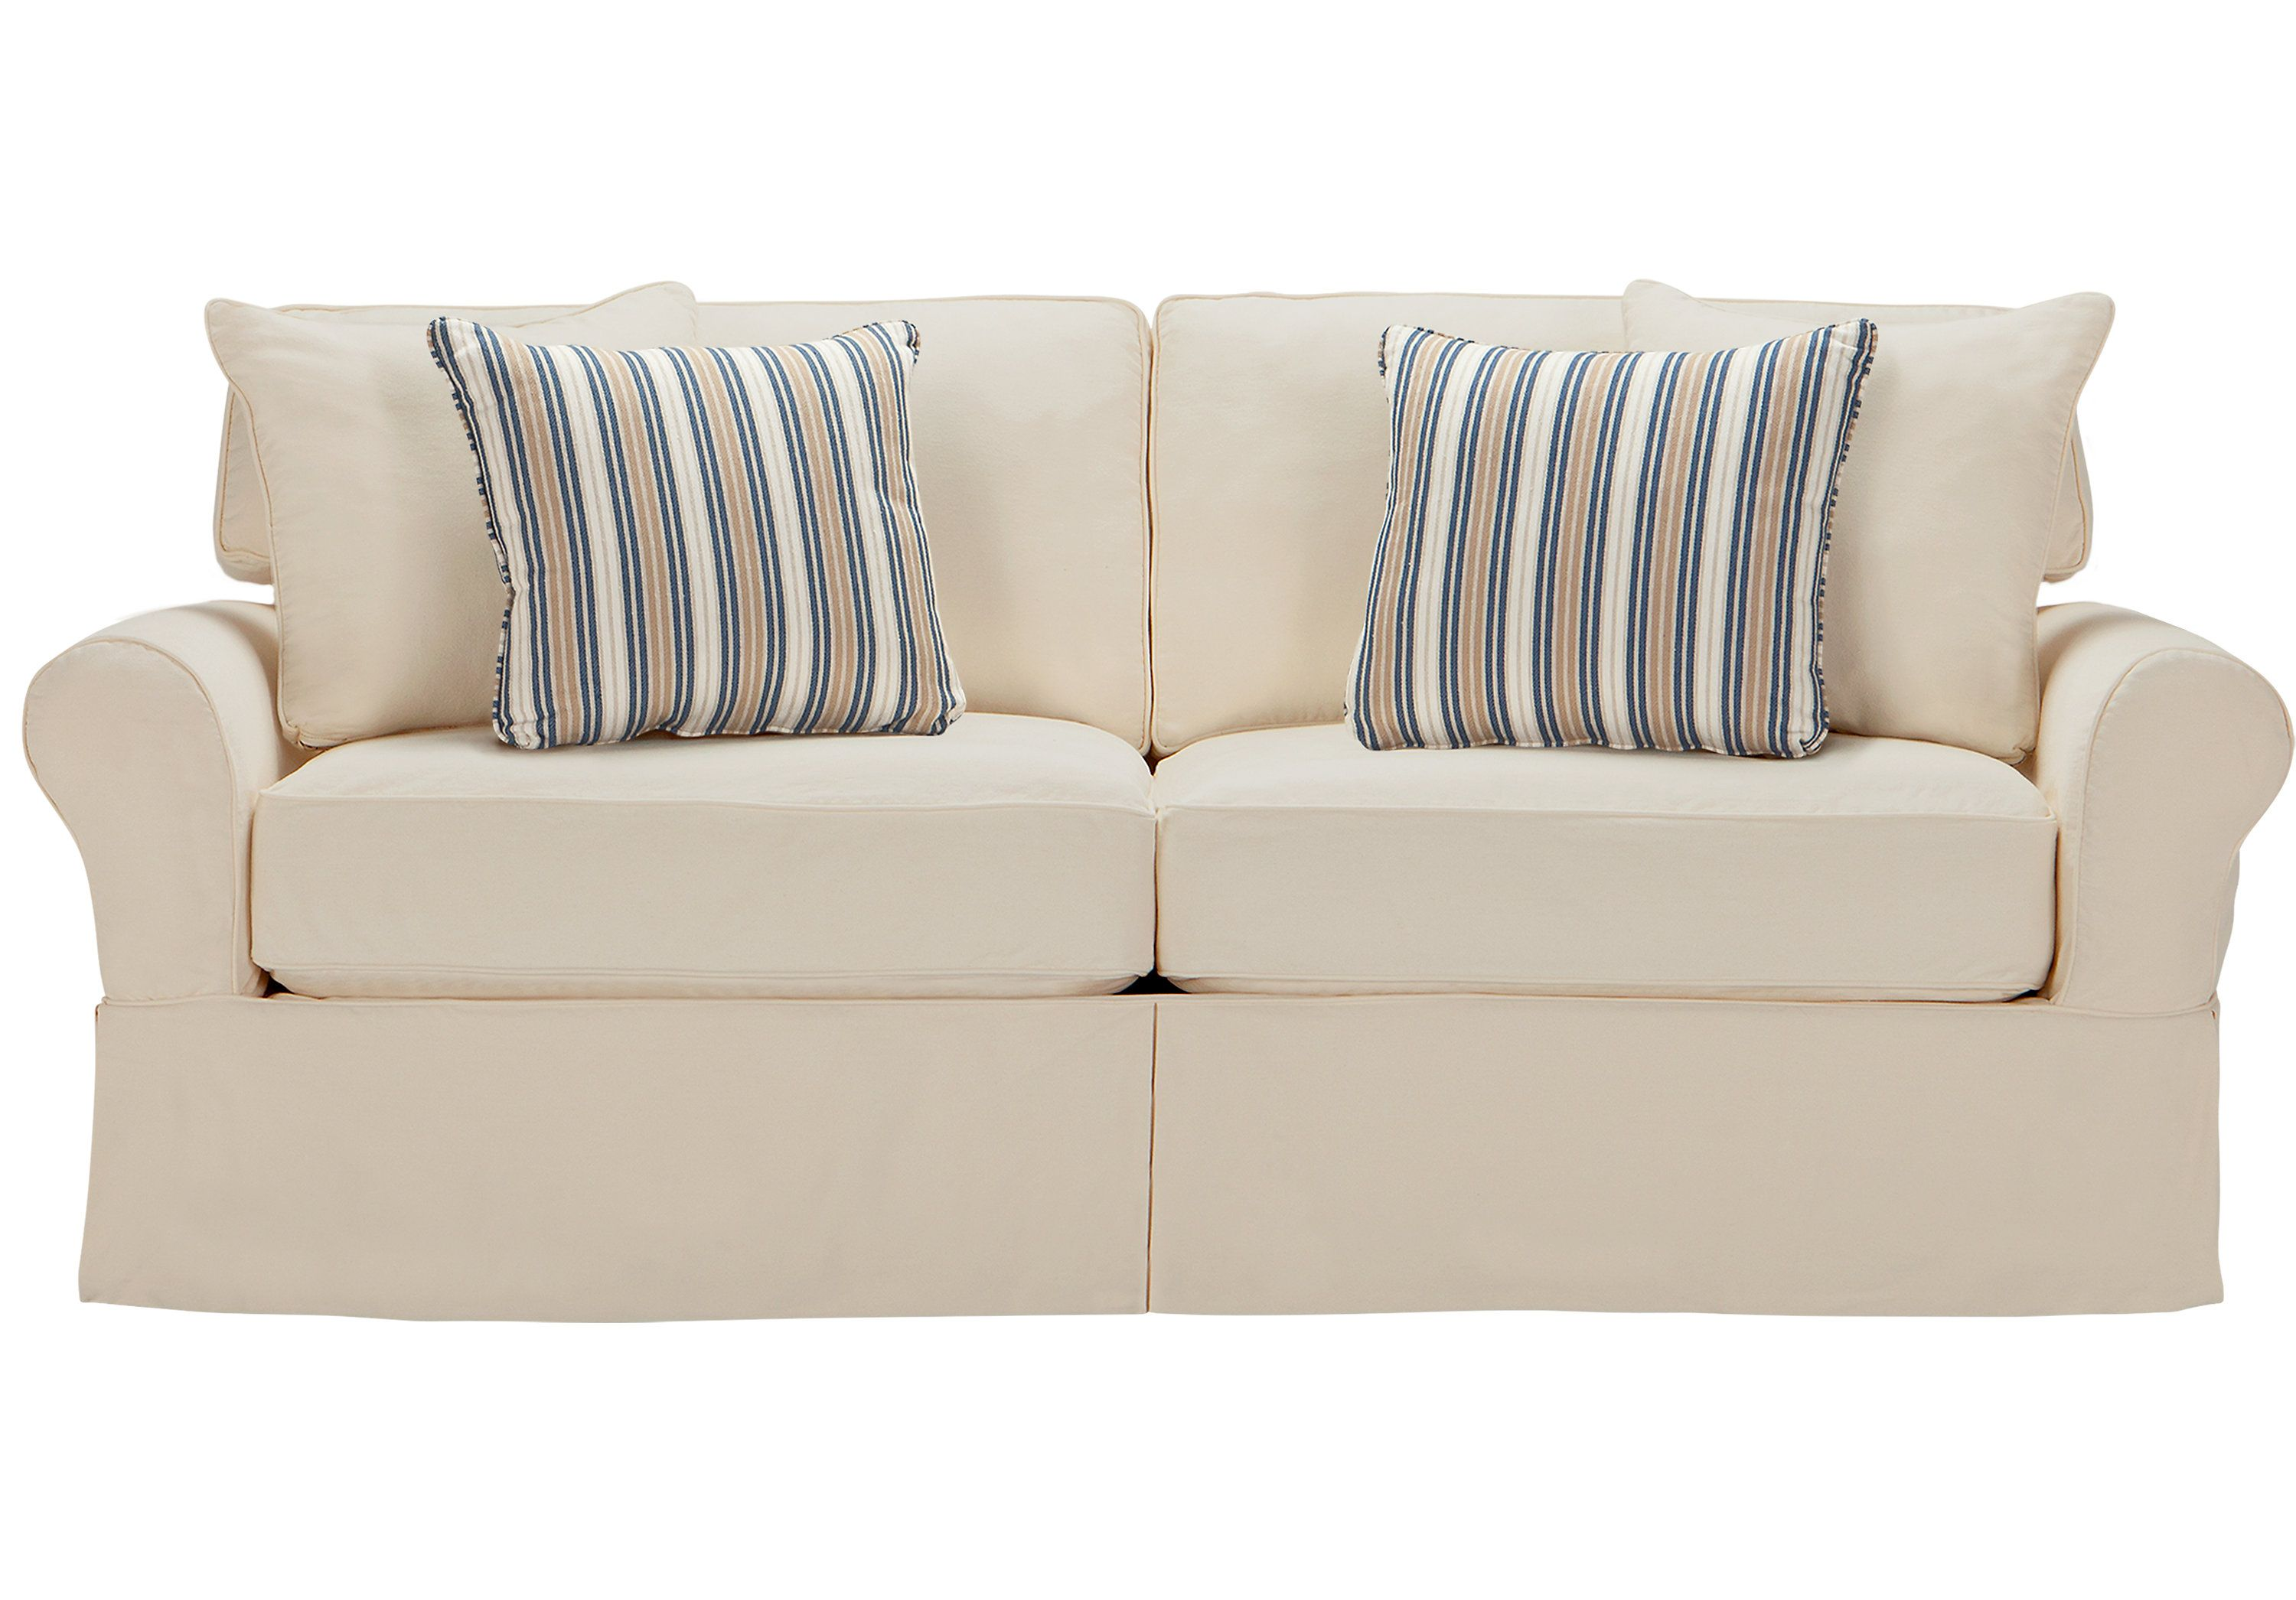 picture of Cindy Crawford Sunny Isles Natural Sofa from Sofas ...